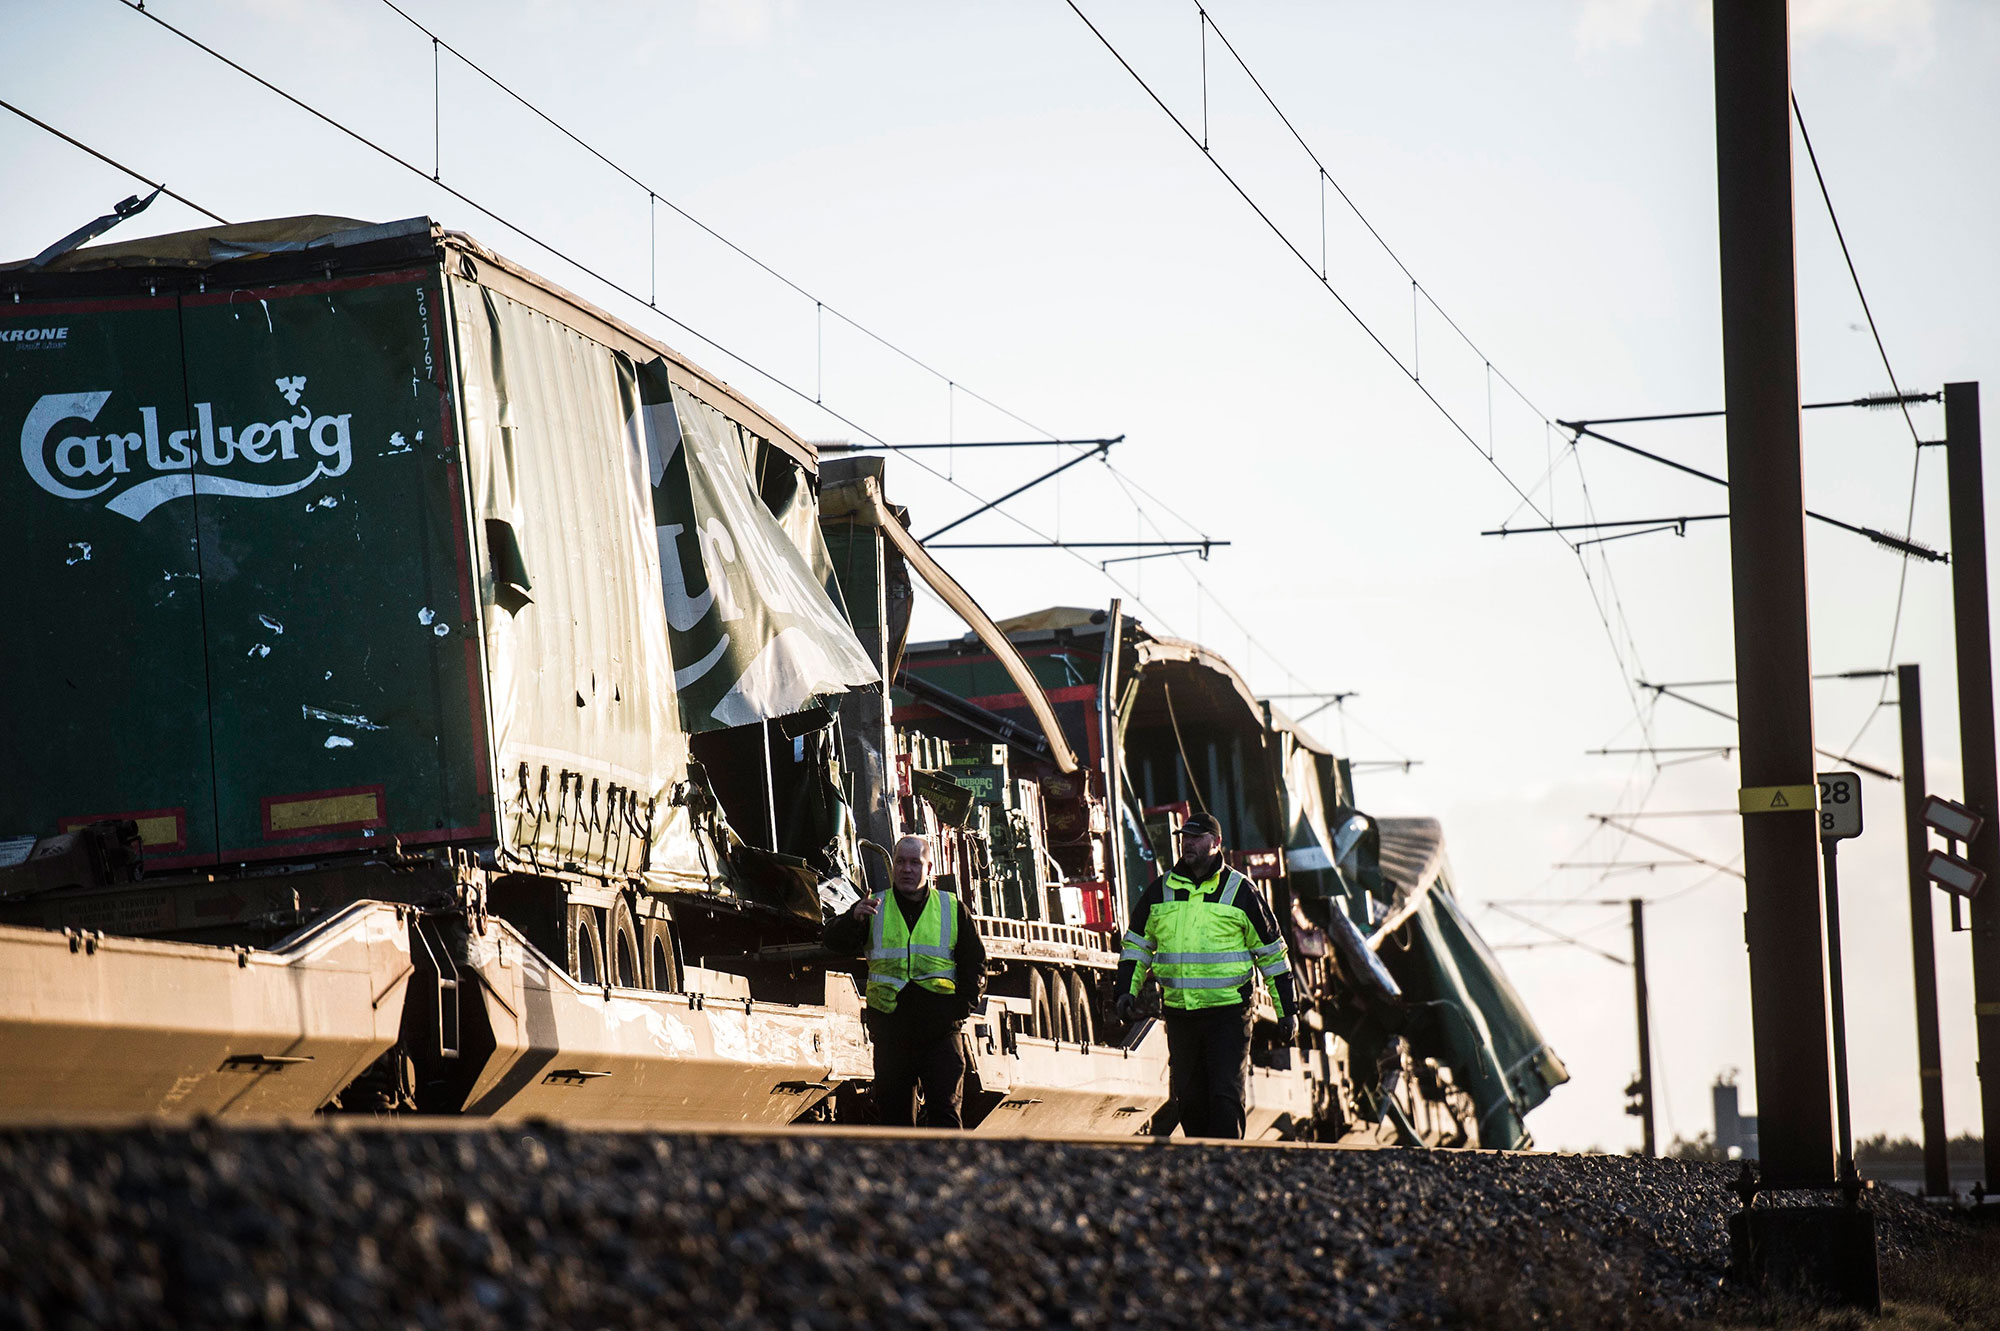 <div class='meta'><div class='origin-logo' data-origin='none'></div><span class='caption-text' data-credit='TIM K. JENSEN/AFP/Getty Images'>Two men walk past a damaged cargo train after an accident on January 2, 2019 in Nyborg, Denmark.</span></div>